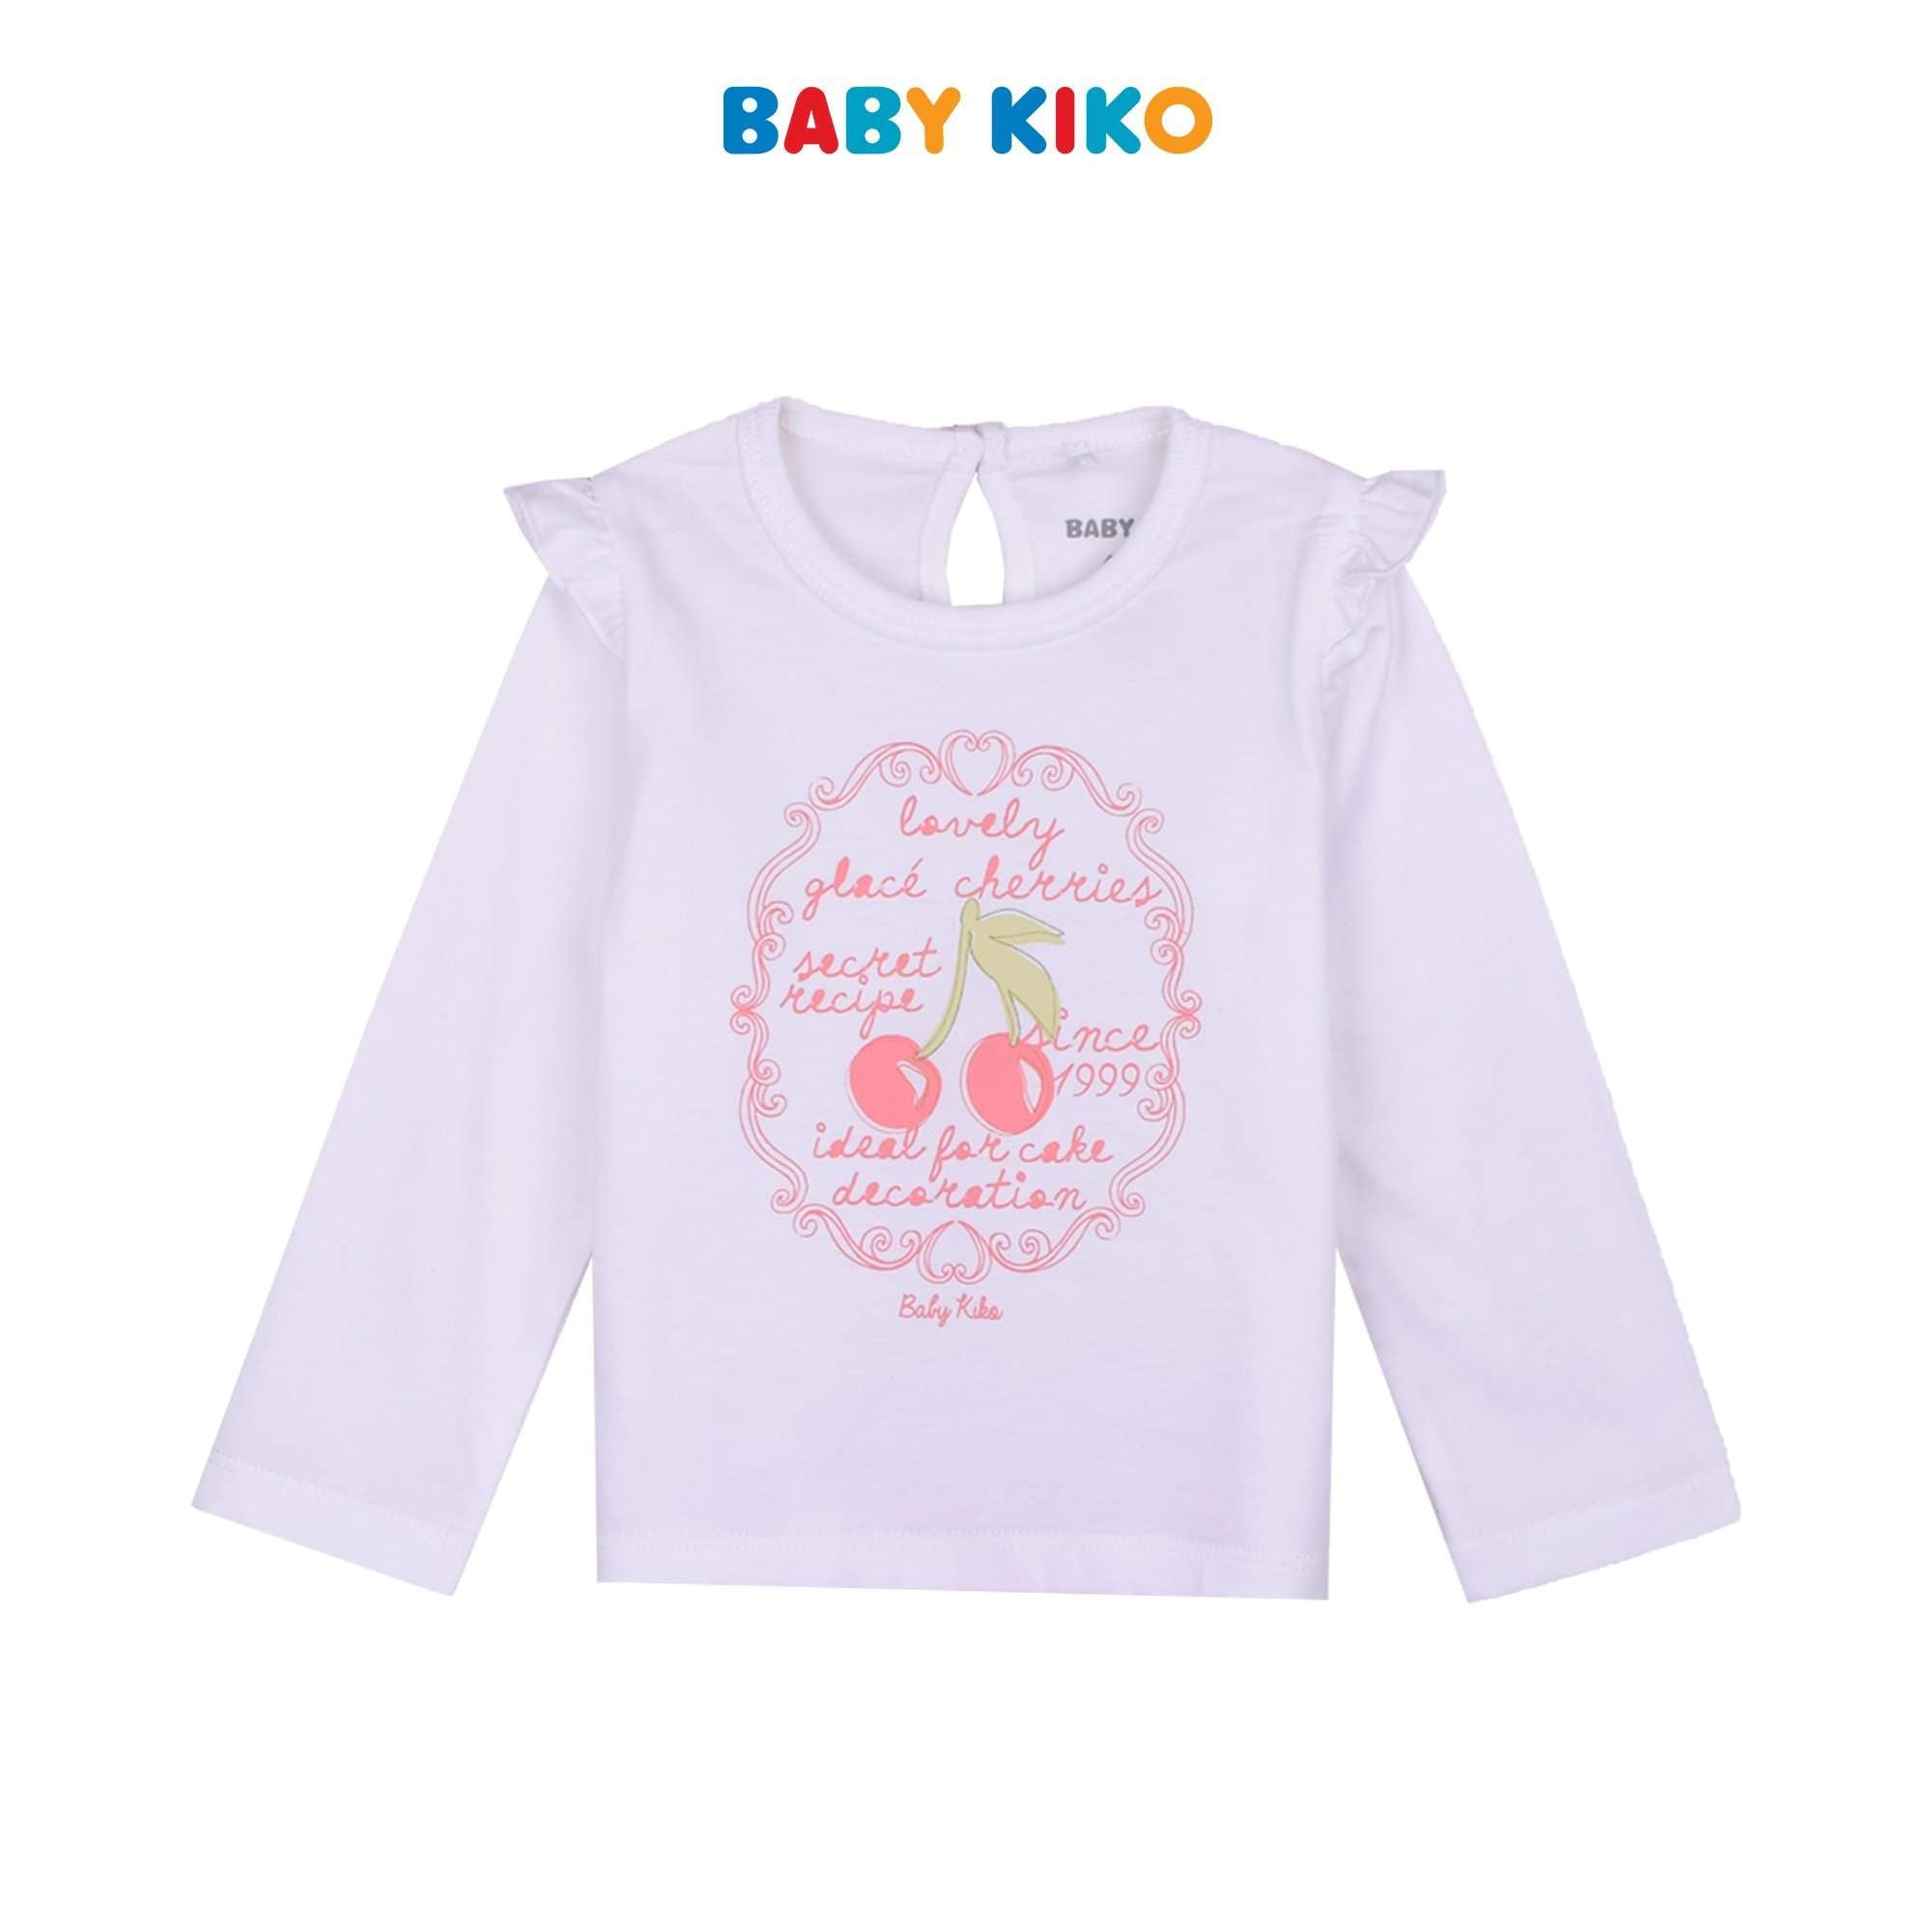 BABY KIKO BABY GIRL BASIC LONG SLEEVE LONG PANTS SUIT - CREAM B924103-4313-W5 : Buy Baby KIKO online at CMG.MY